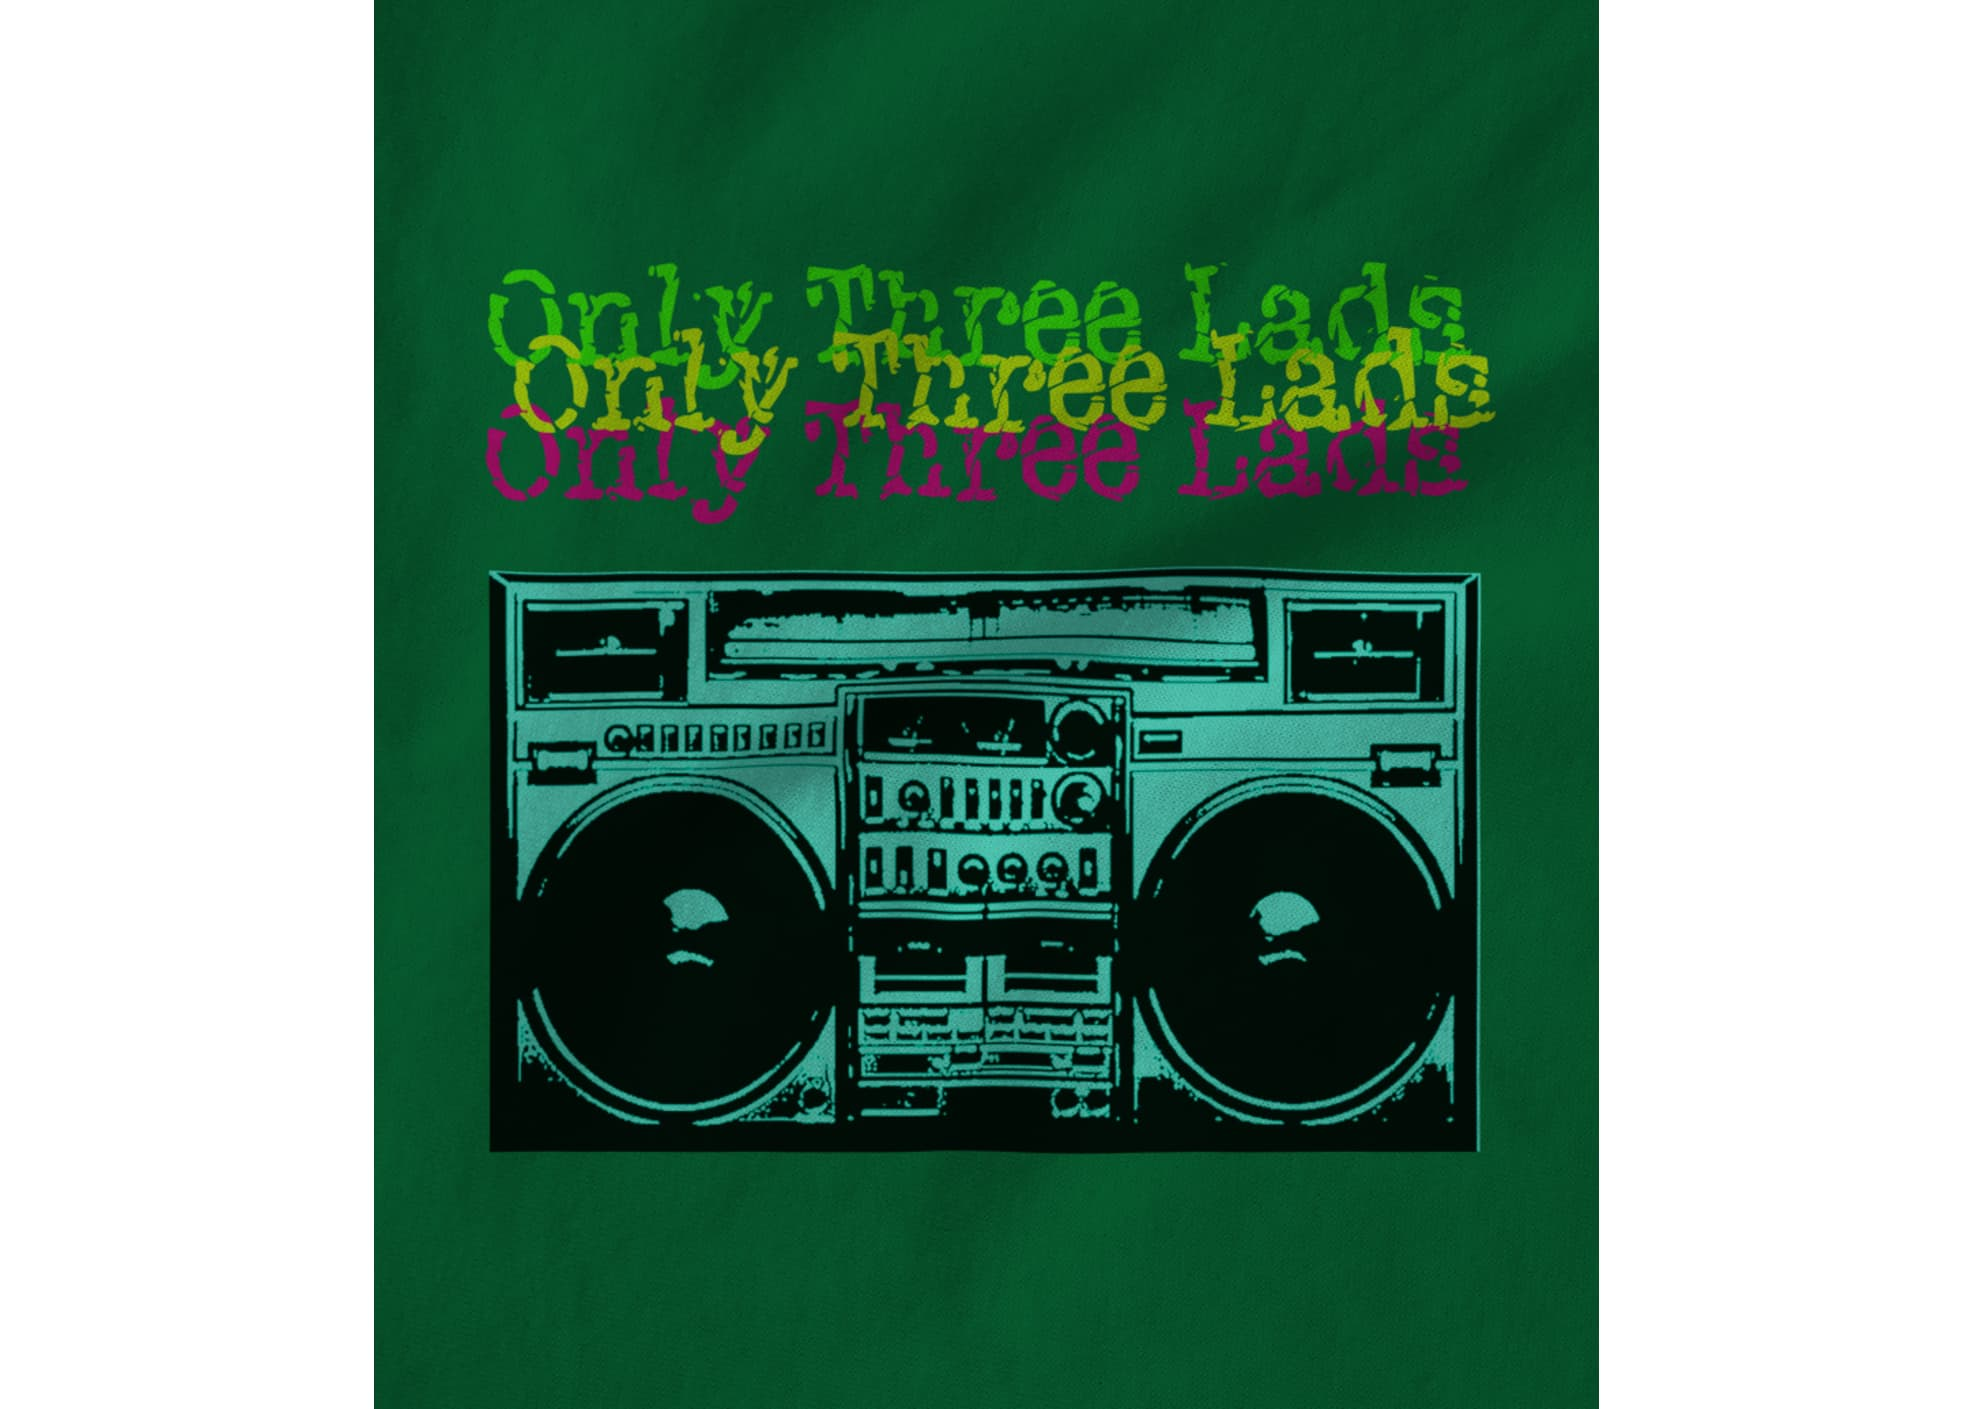 Only three lads o3l   boombox  green  1581058370